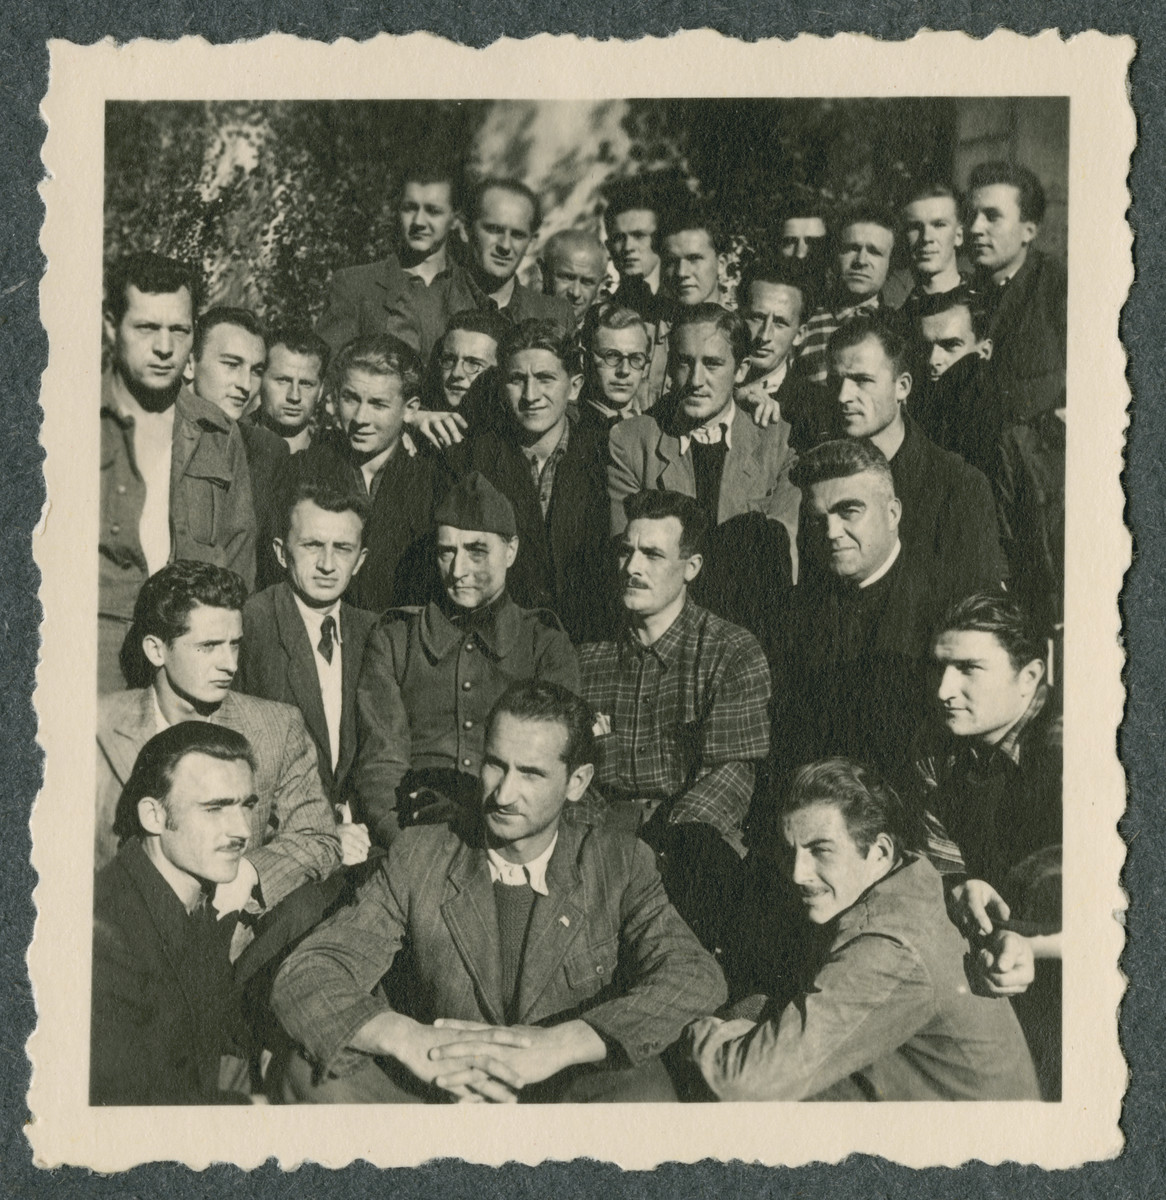 Group portrait of prisoners in the Tittmoning camp.    Father Sledz is on the right, second row.